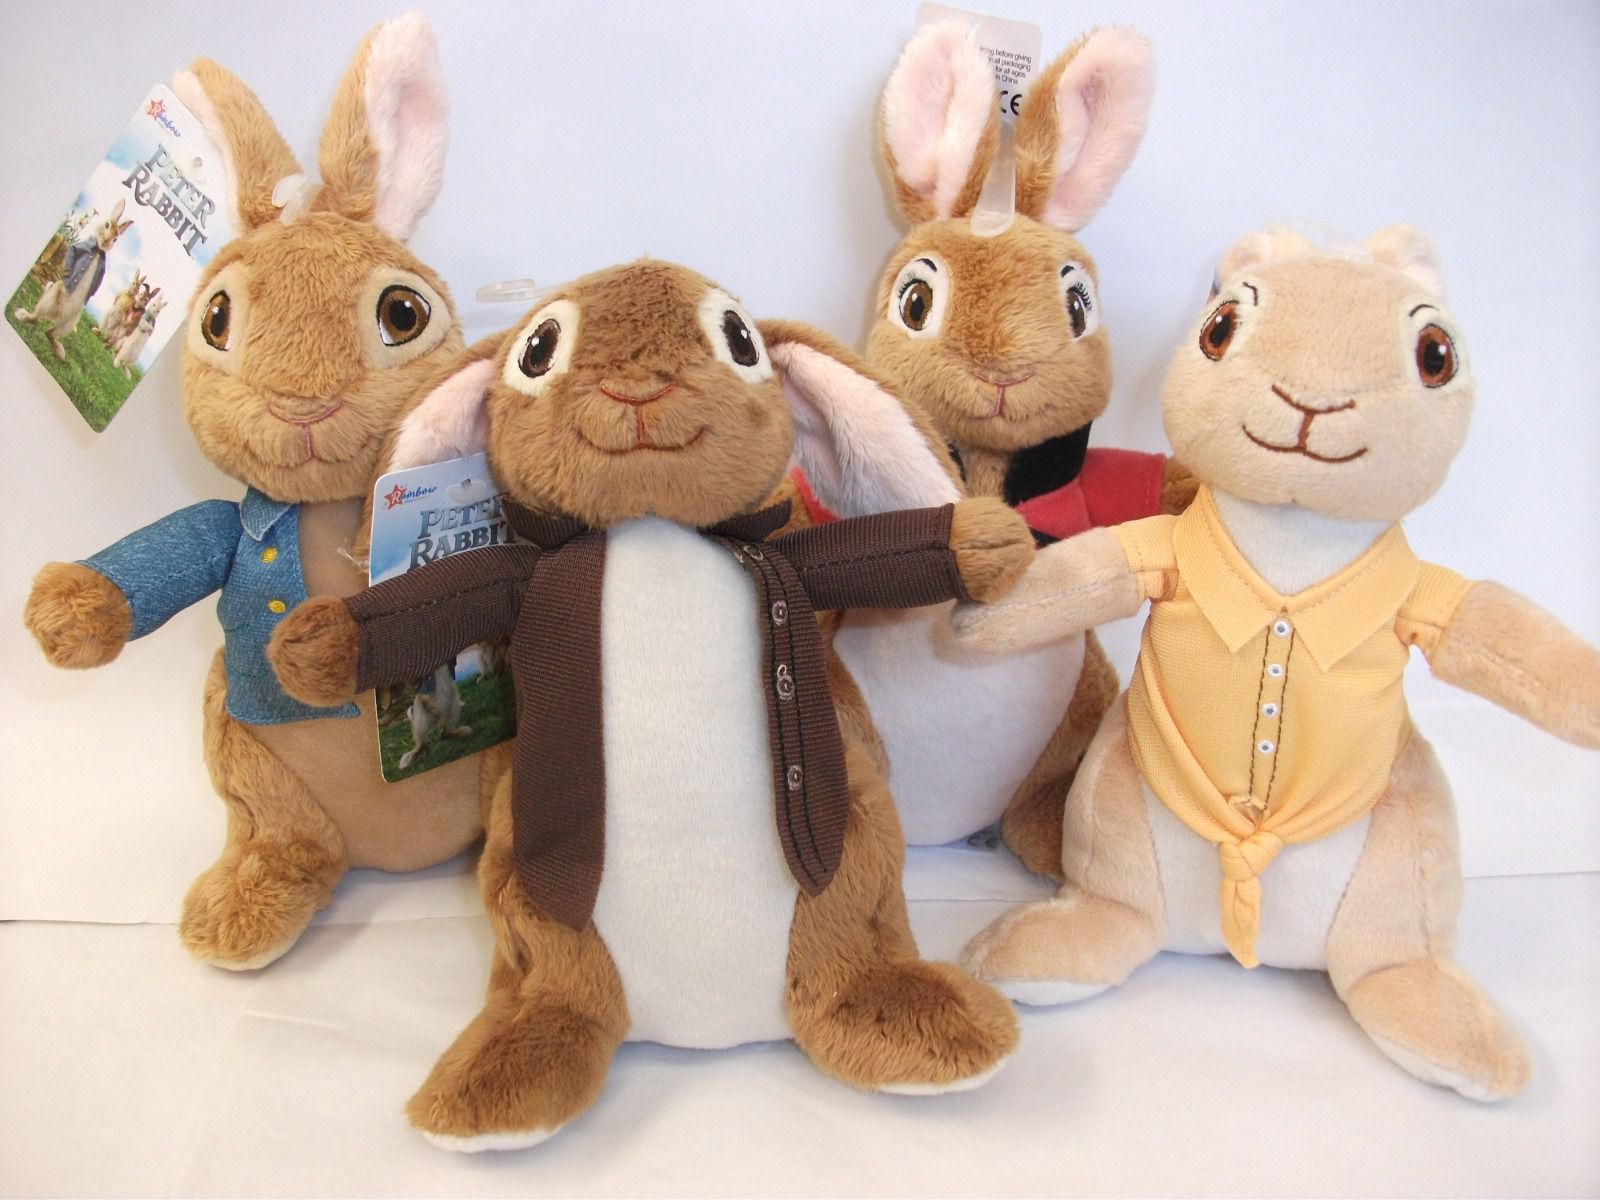 Peter Rabbit's crew: Peter, Benjamin, Flopsy and Mopsy by Rainbow Designs